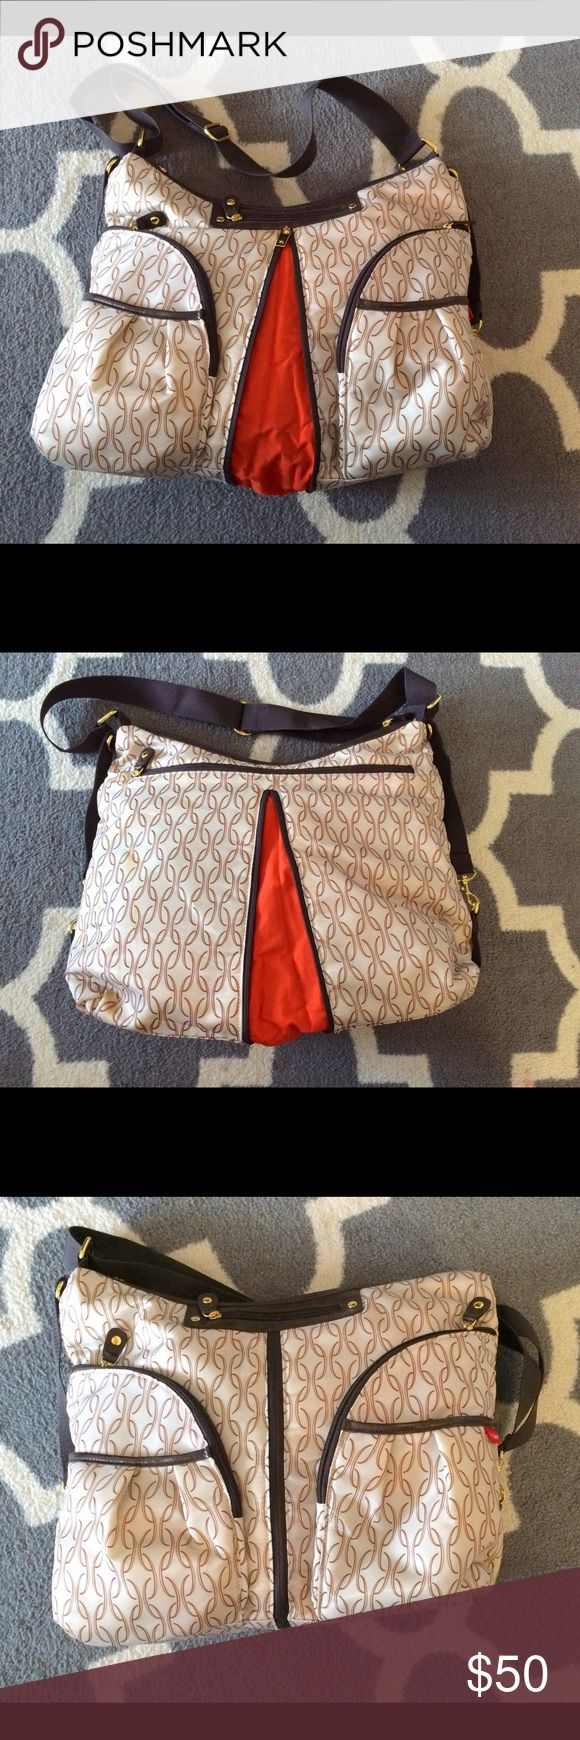 Skip Hop Versa Diaper Bag/Purse Large purse-style diaper bag.  Small zip phone pocket on front, 2 zip & 2 open pockets on front, 4 open pouch pockets inside. Changing pad inside back zip pocket (never used).  Center zip opens/closes to adjust size.  Some staining on left side of back (may come out in wash, just saw it), otherwise brand new condition. Bought for a formal event & carried once.  Sold at Nordstroms & Skip Hop online. Skip Hop Bags Baby Bags